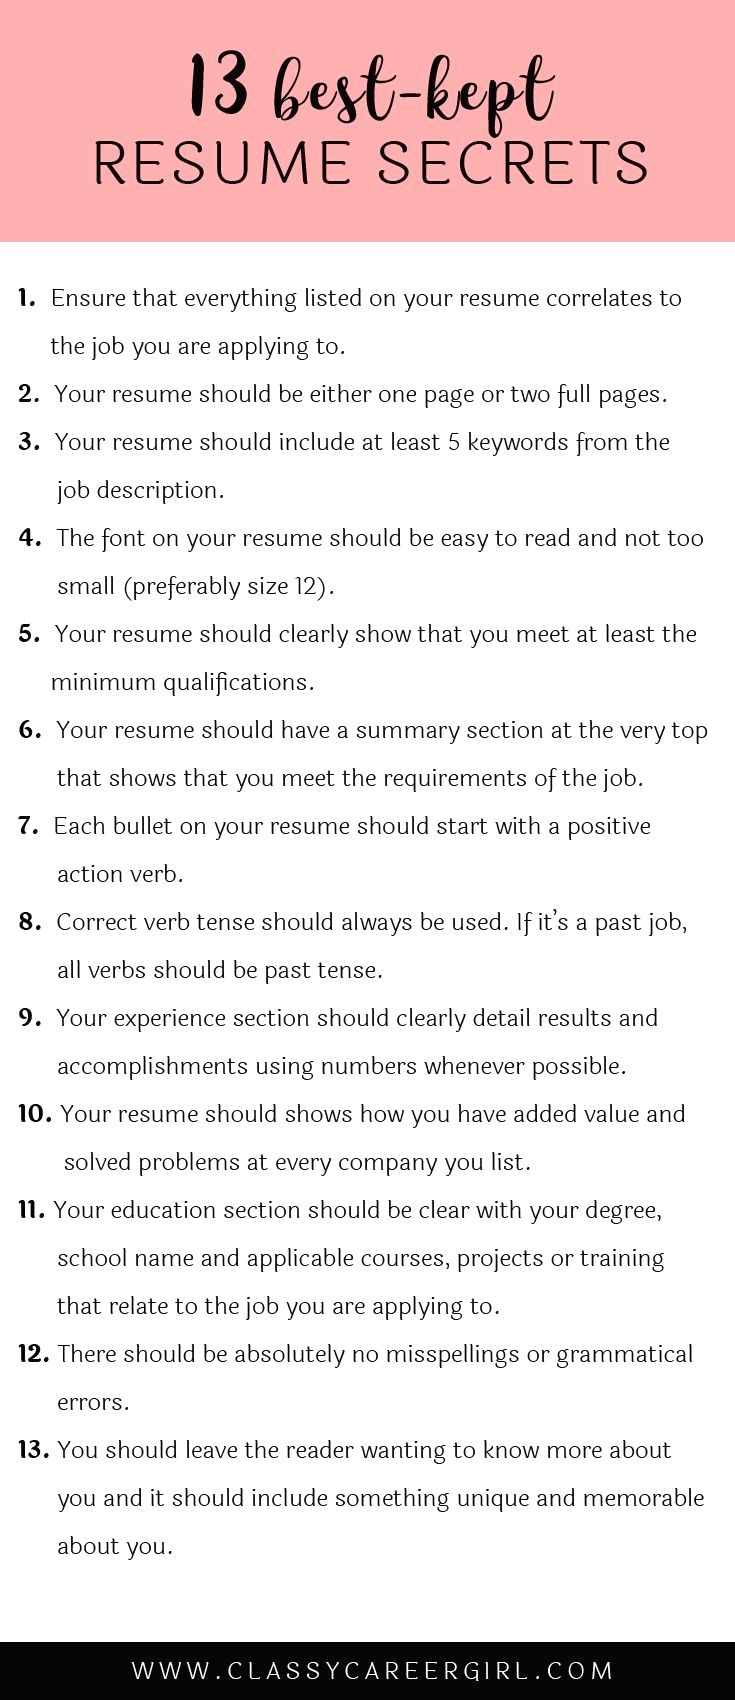 Here are 13 resume secrets that will turn your resume from boring to AWESOME These secrets truly are important to stand out from your petition